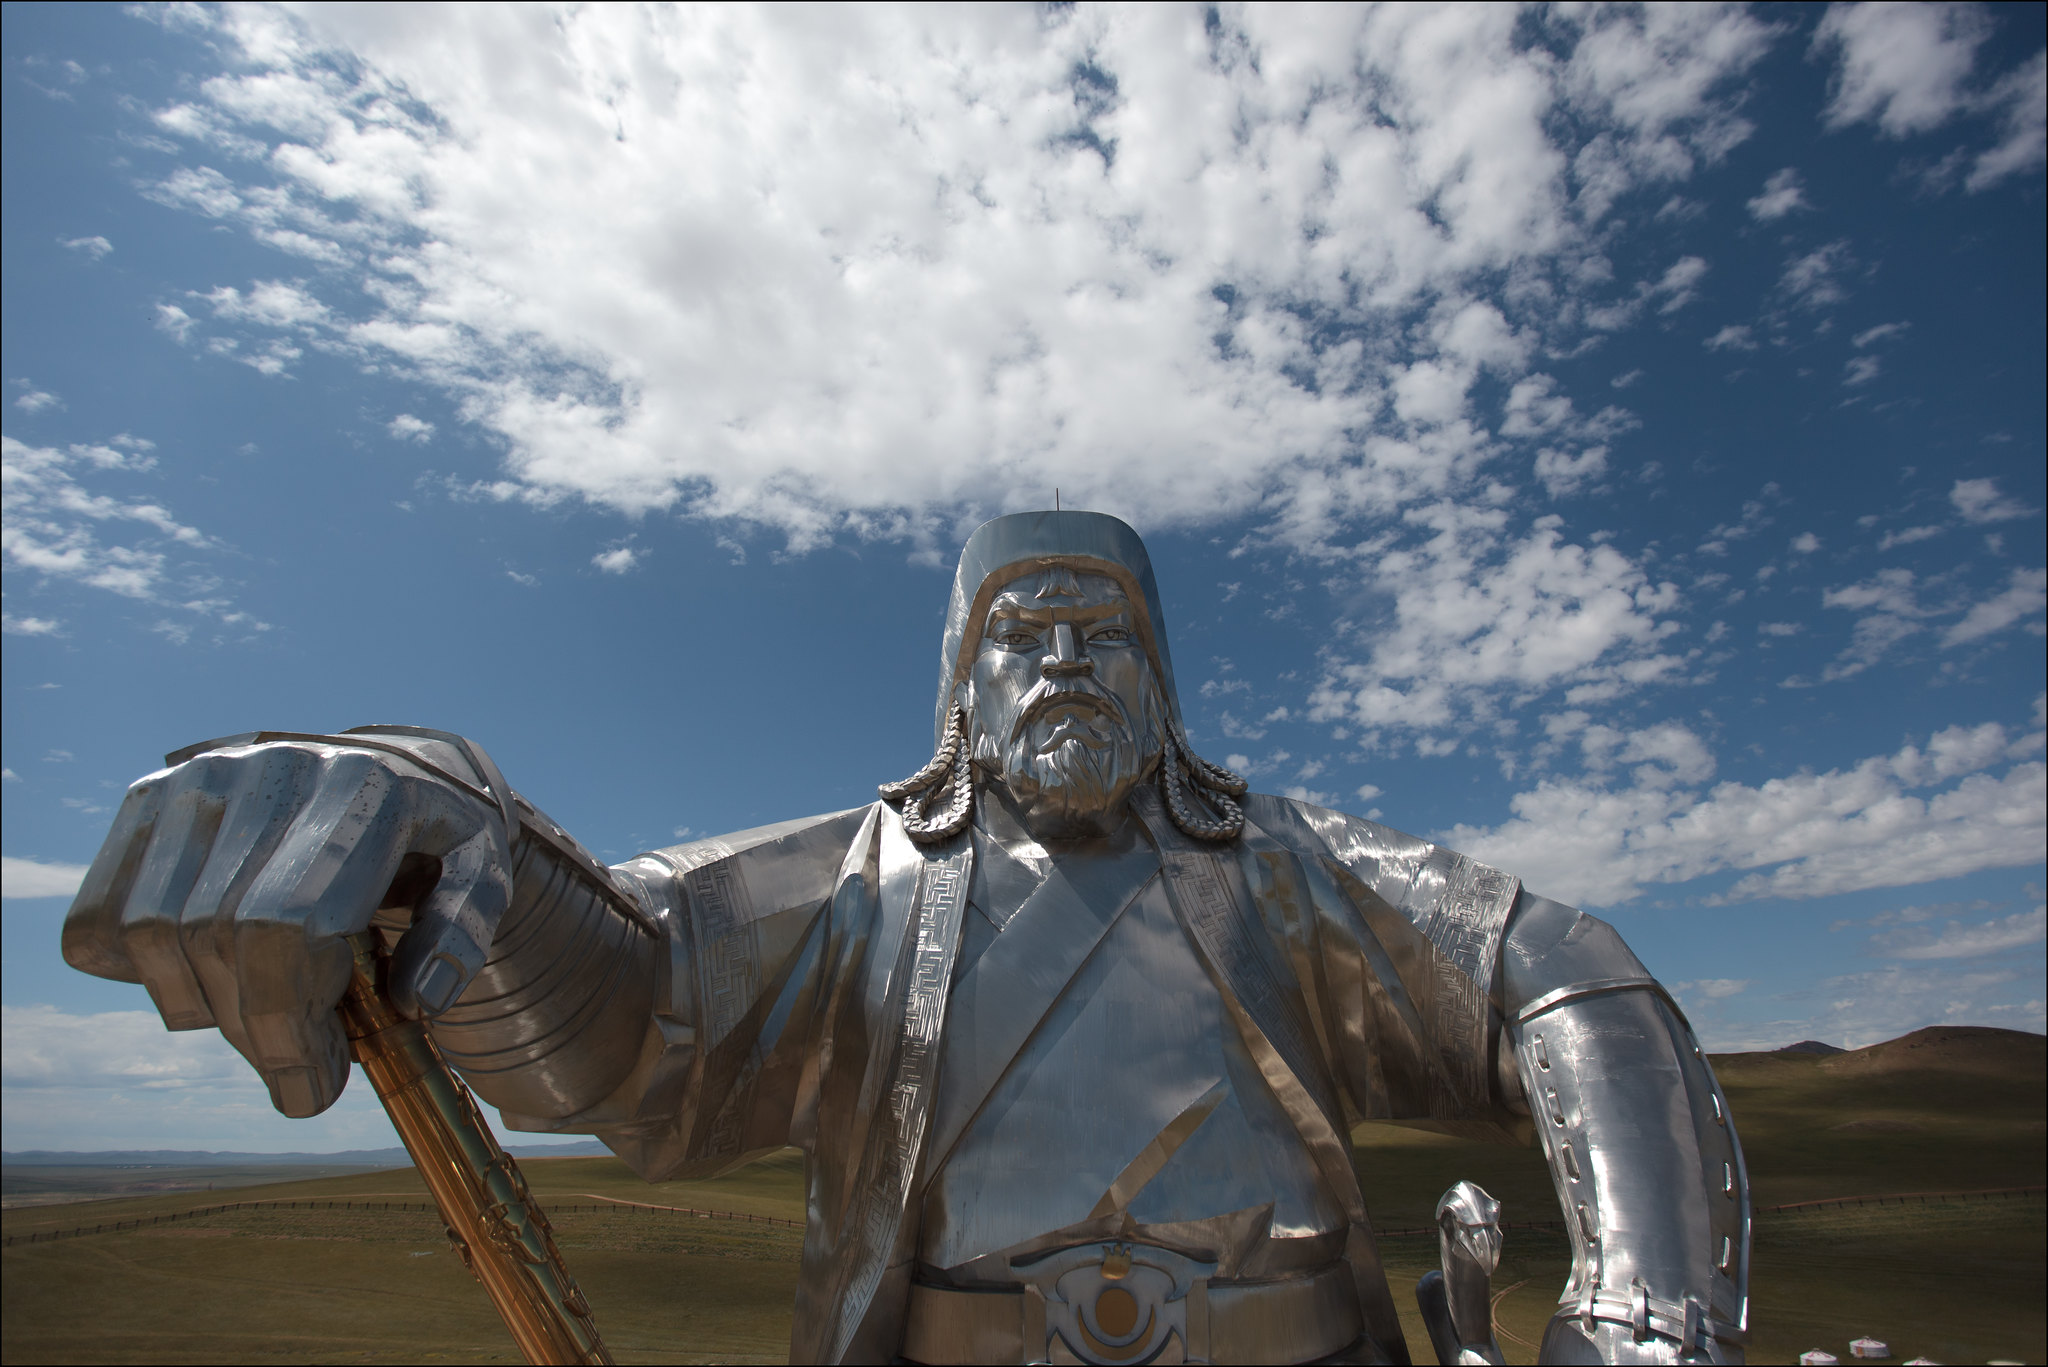 Photo: Giant statue of Genghis Khan. Credit: Ludovic Hirlimann, Flickr.